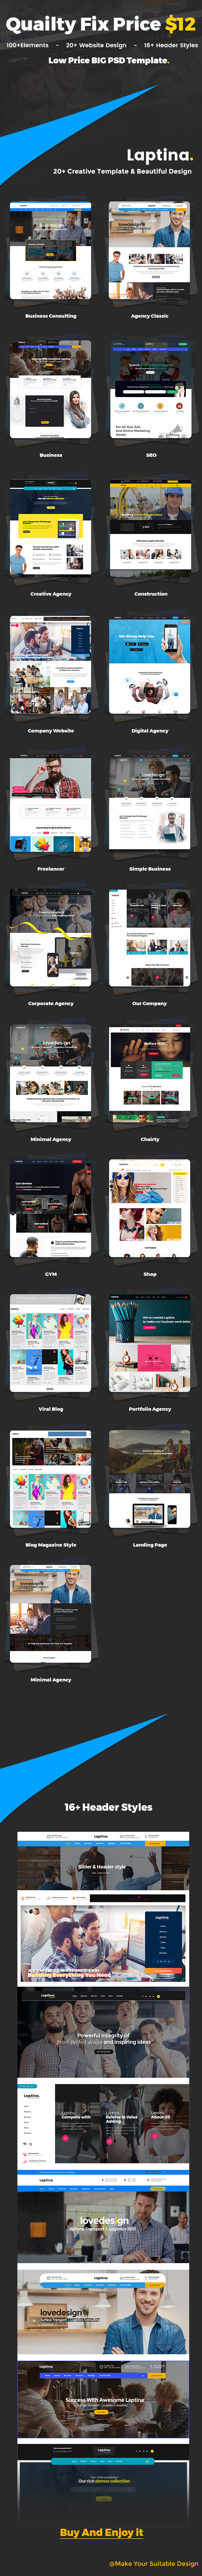 Laptina - Multi-Purpose Business & Financial Professional, Consulting  PSD Template - 1